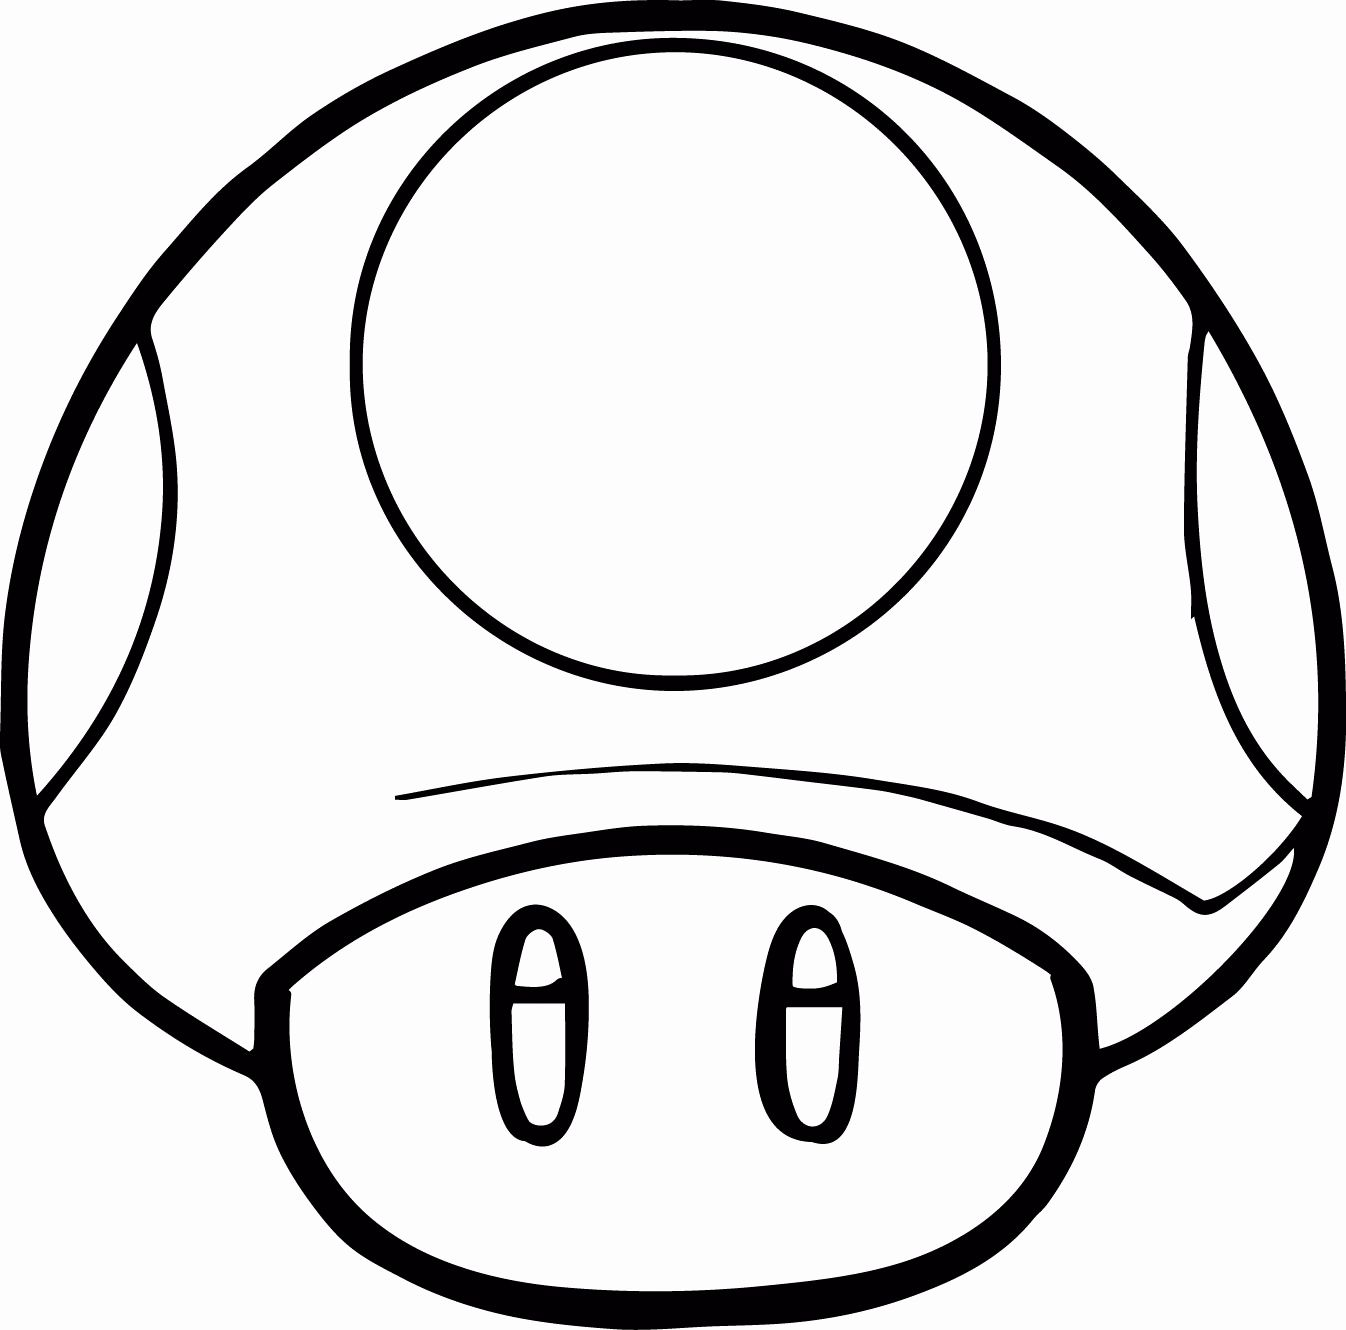 Super Mario Coloring Book Fresh Toad Coloring Pages From Super Mario Coloring Home Mario Coloring Pages Super Mario Coloring Pages Coloring Pages For Kids